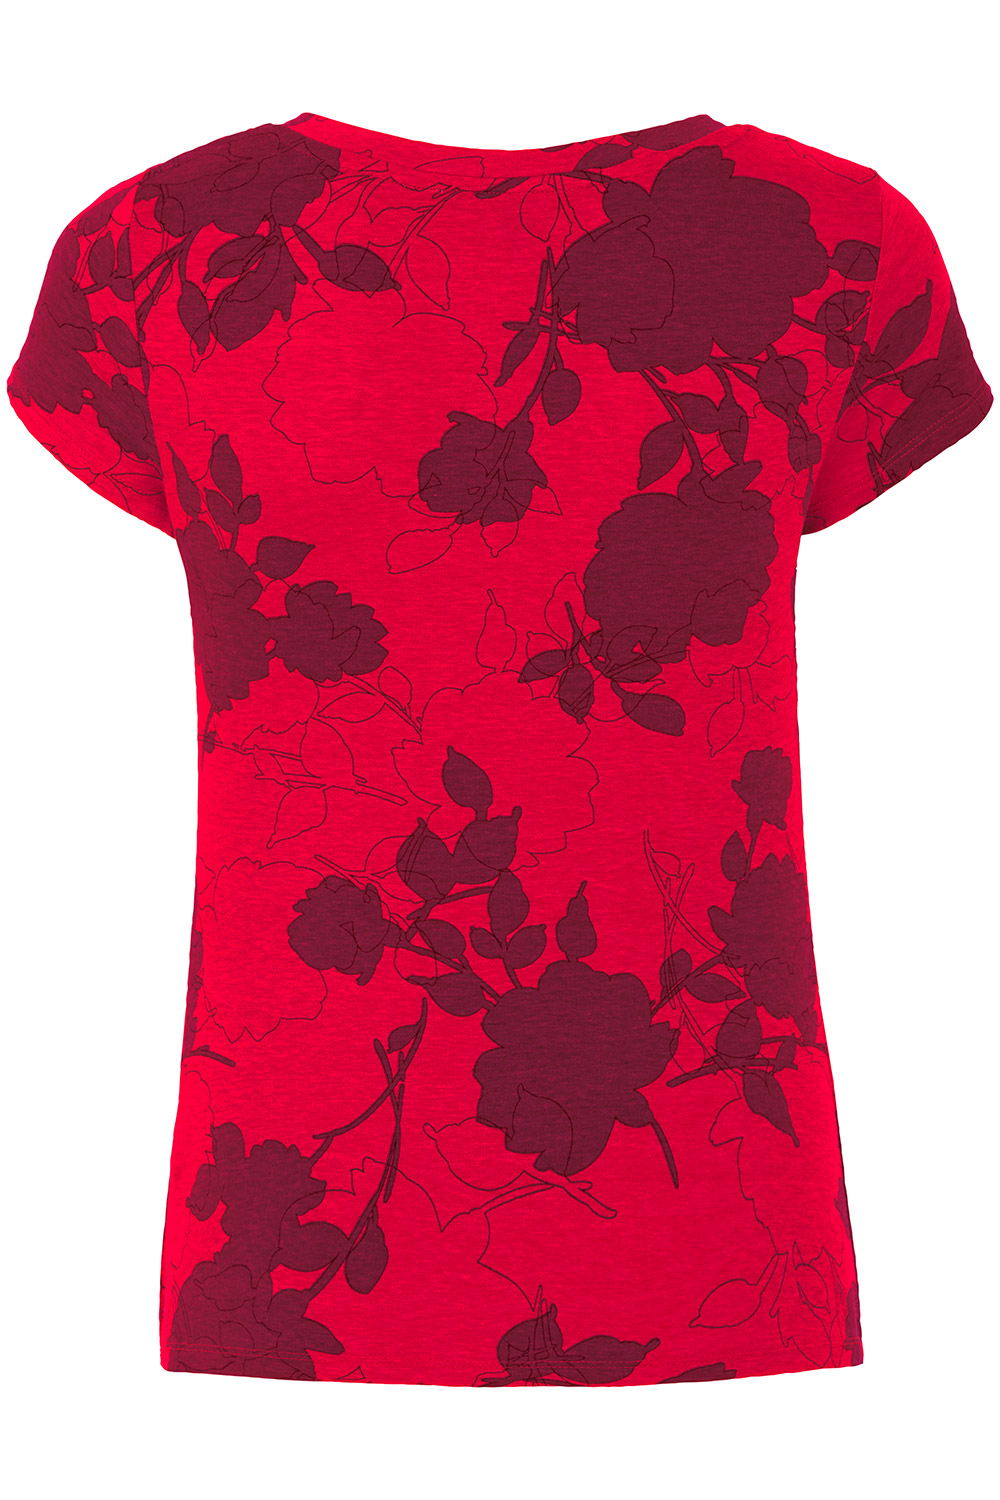 1000x1500 Rose Print V Neck Top